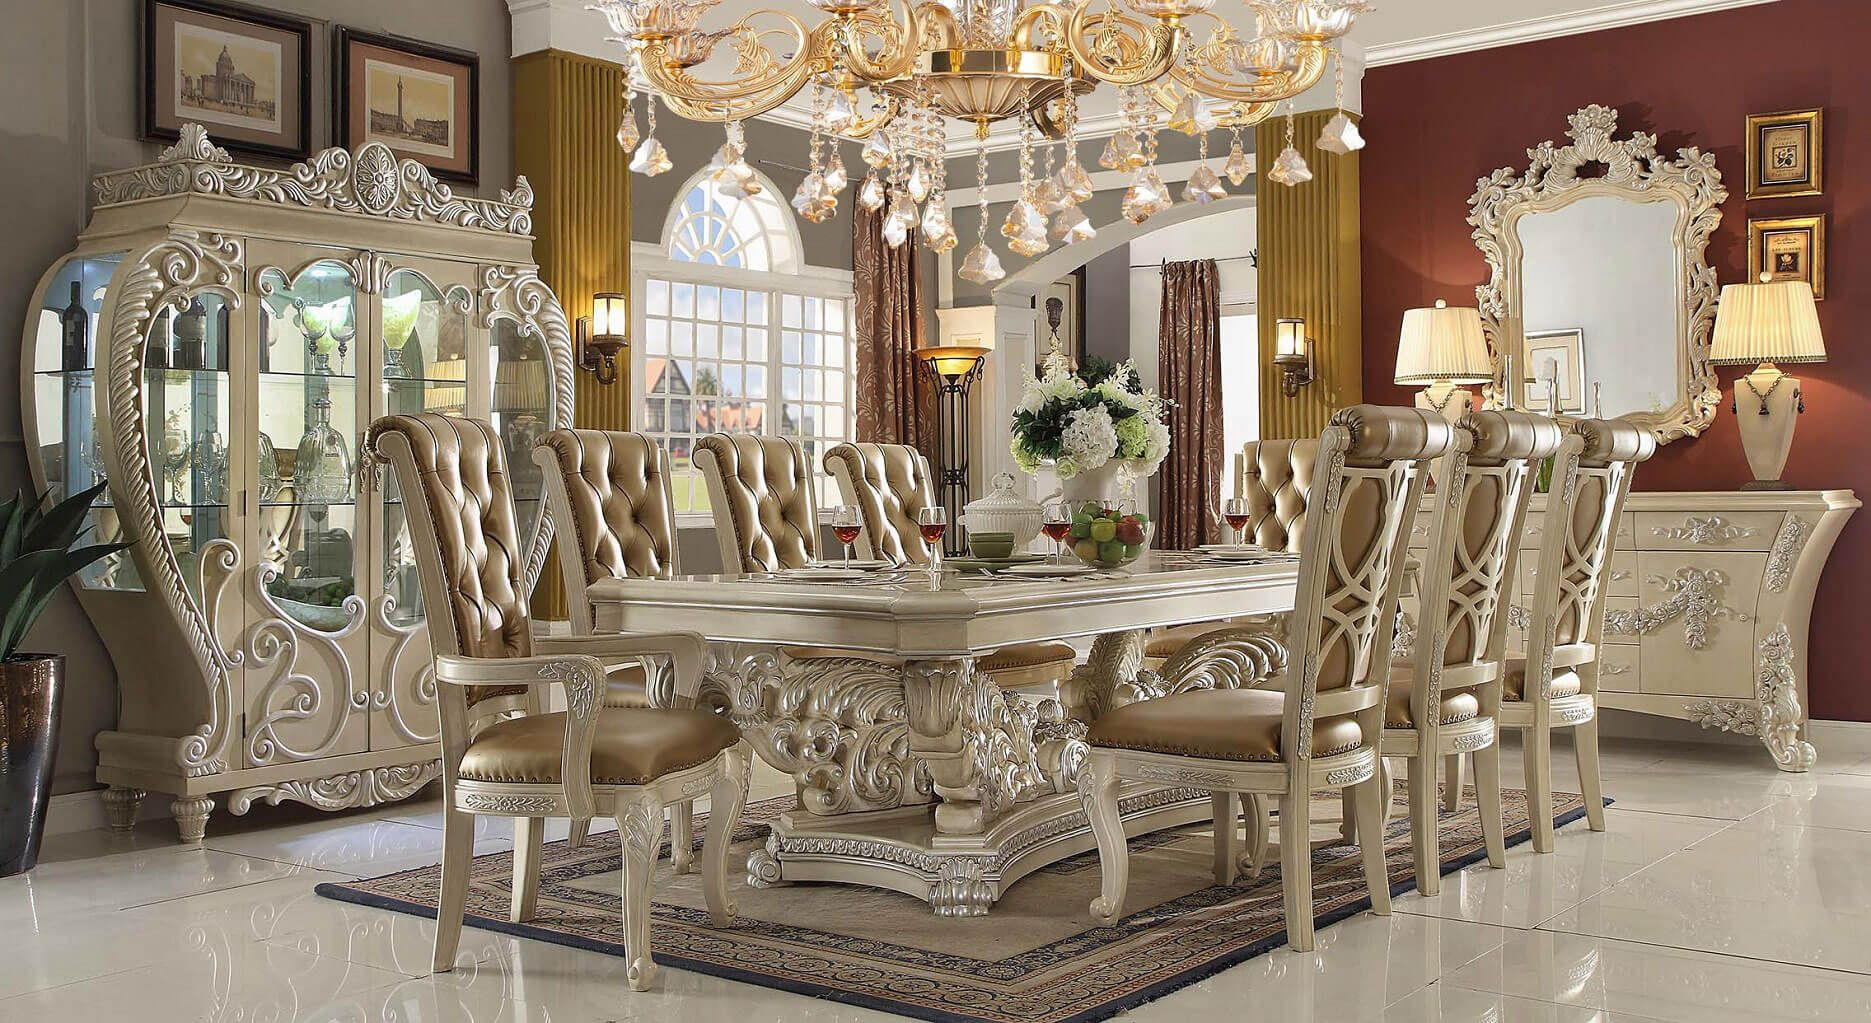 Luxury Dining Furniture. Exquisite Boulle Marquetry Work | Dining Furniture,  Luxury And Luxury Furniture